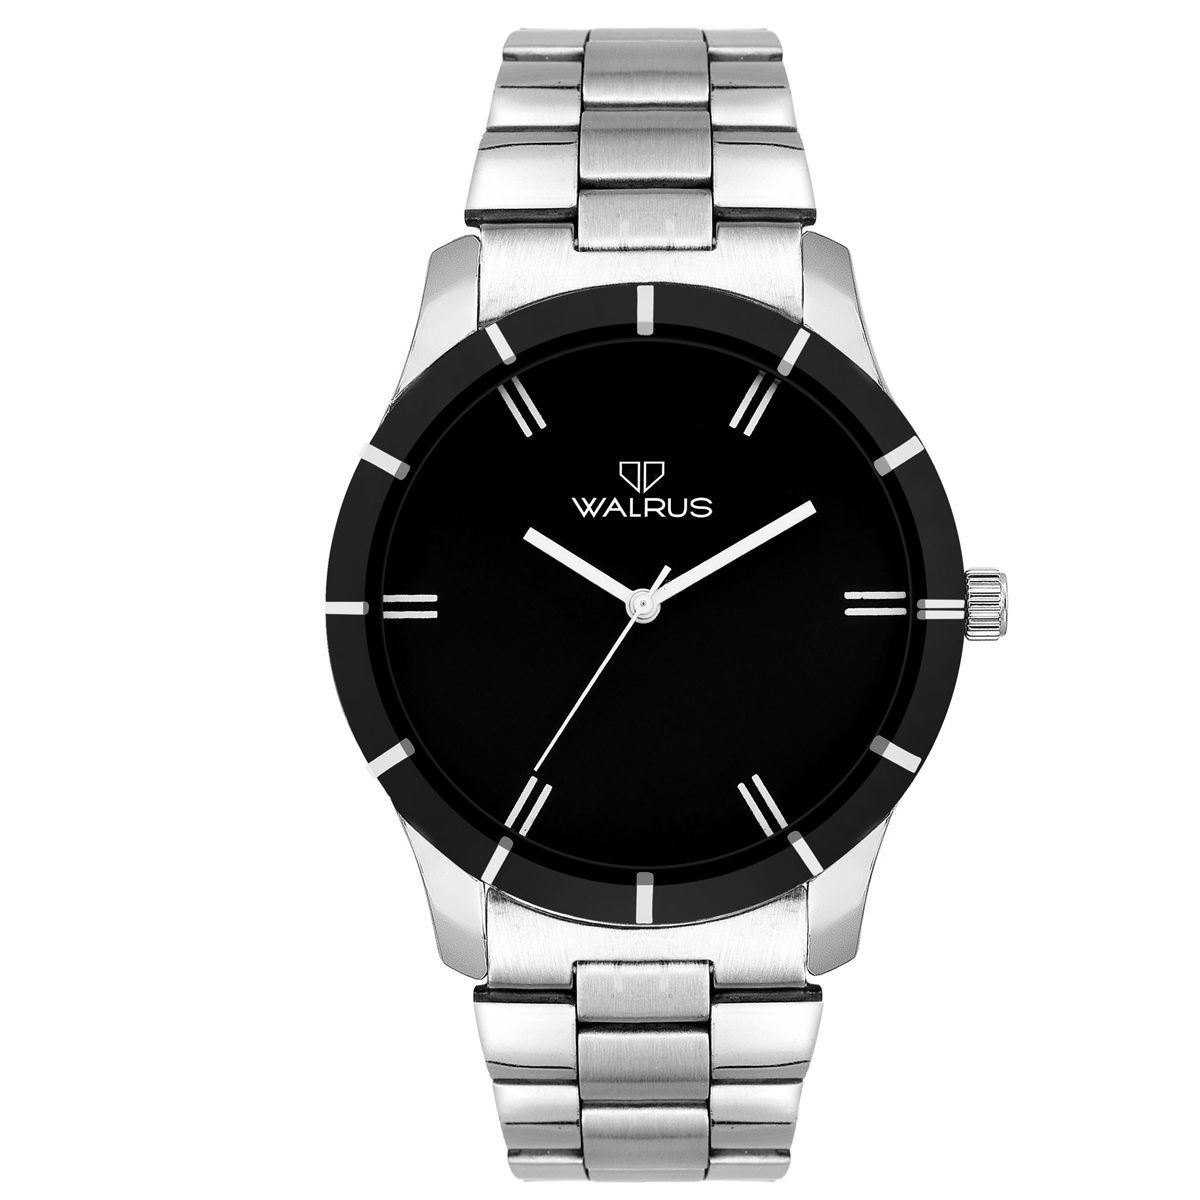 Walrus Adam Chain Black Color Analog Men Watch -WWM-ADM-CH-020707